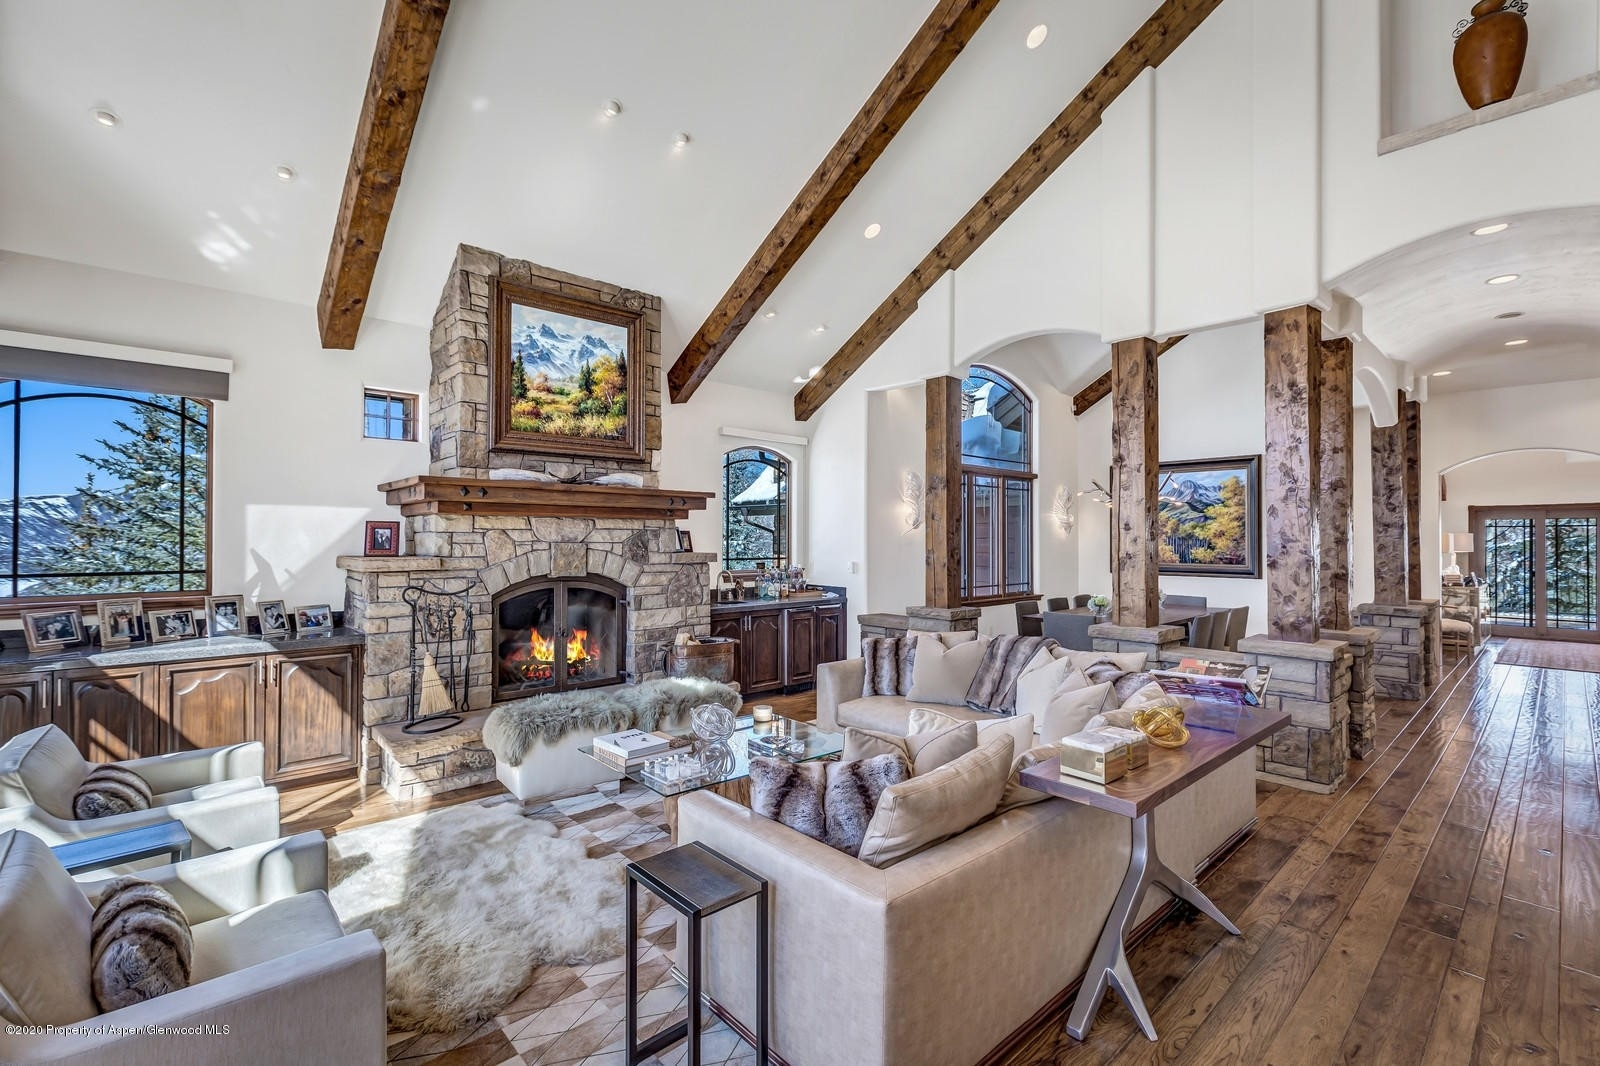 Maison unifamiliale pour l Vente à Snowmass Village, CO 81615